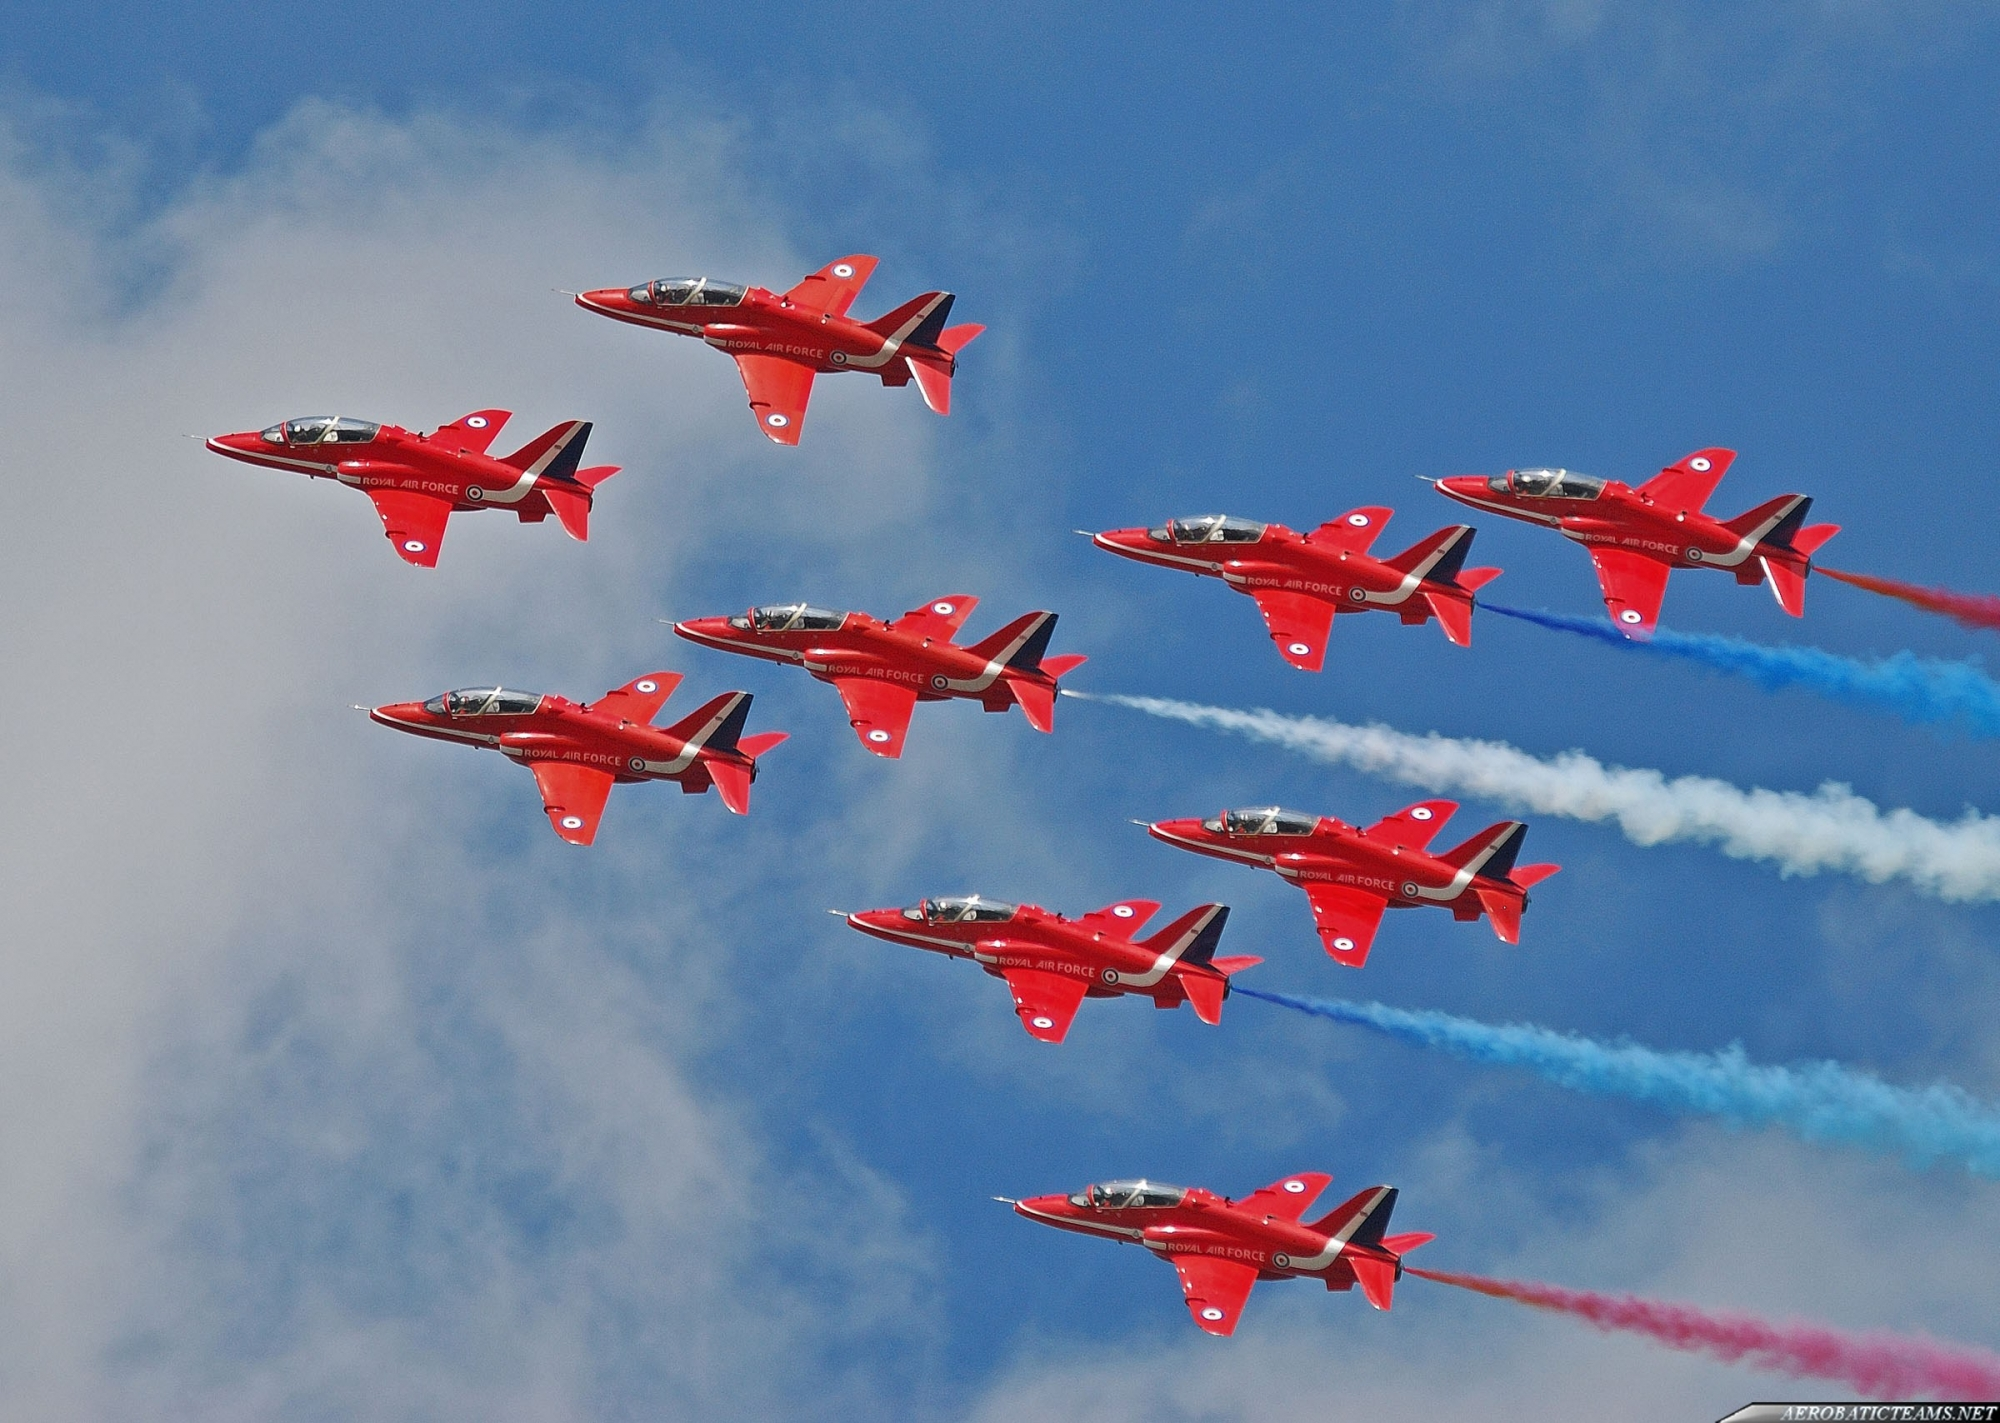 Red Arrows aerobatic display banned at Farnborough Airshow